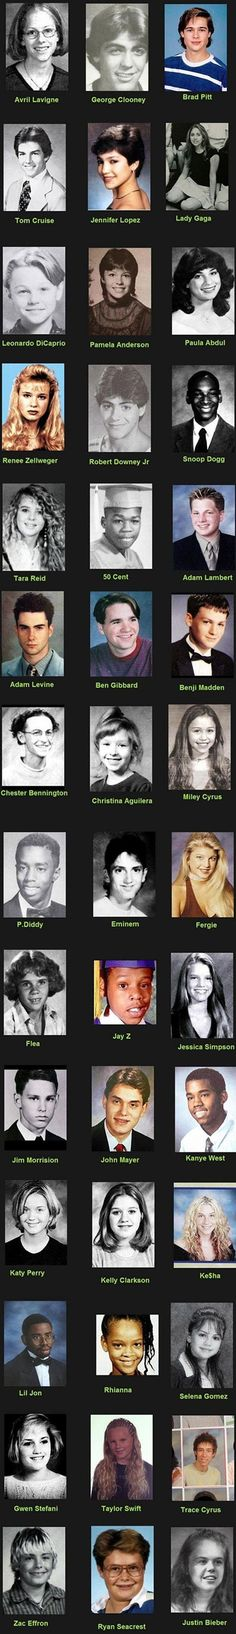 Celebrity yearbook photos and Justin Bieber.